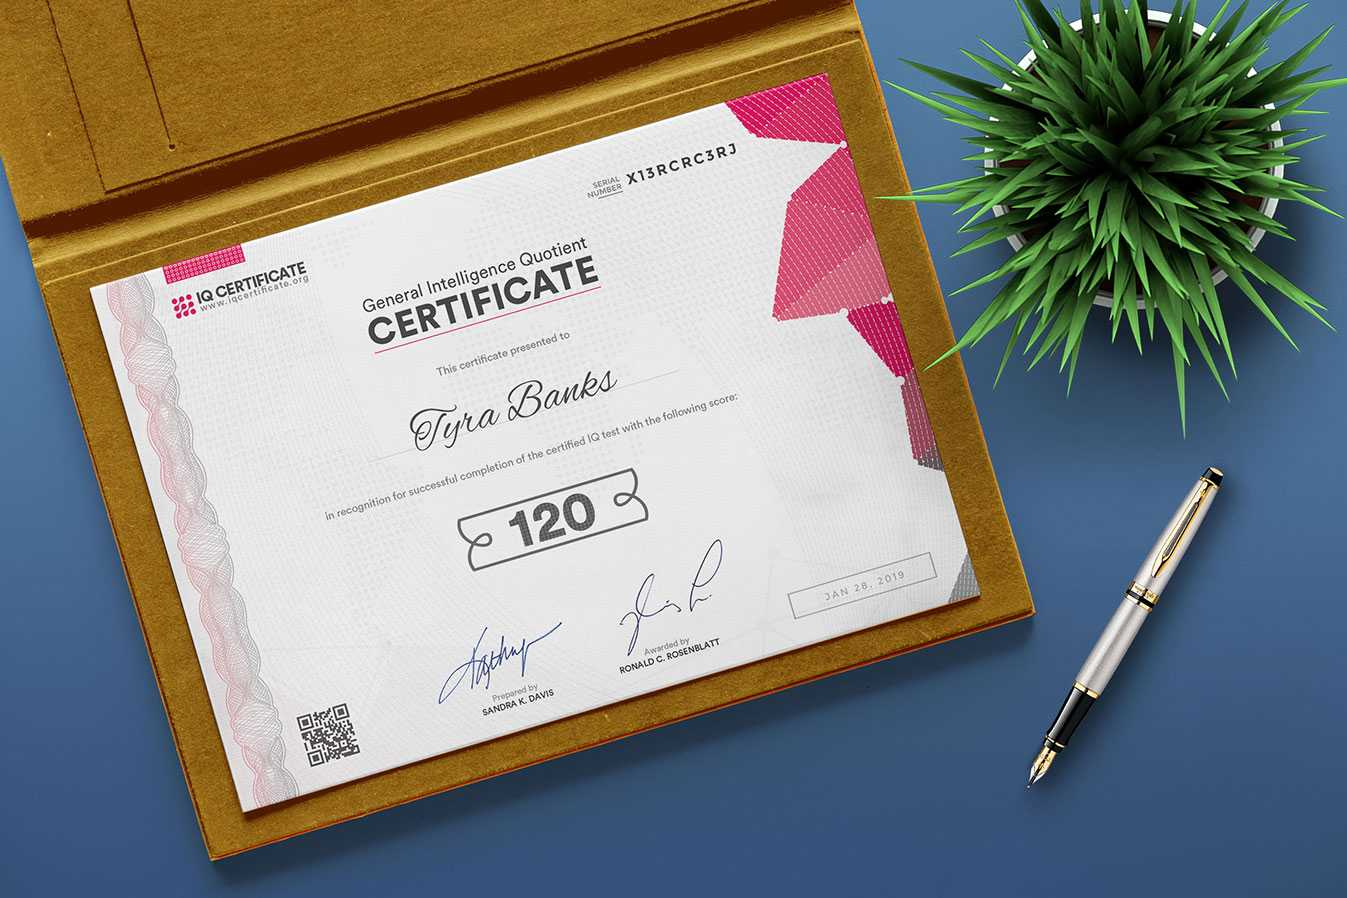 Sample Iq Certificate - Get Your Iq Certificate! In Iq Certificate Template